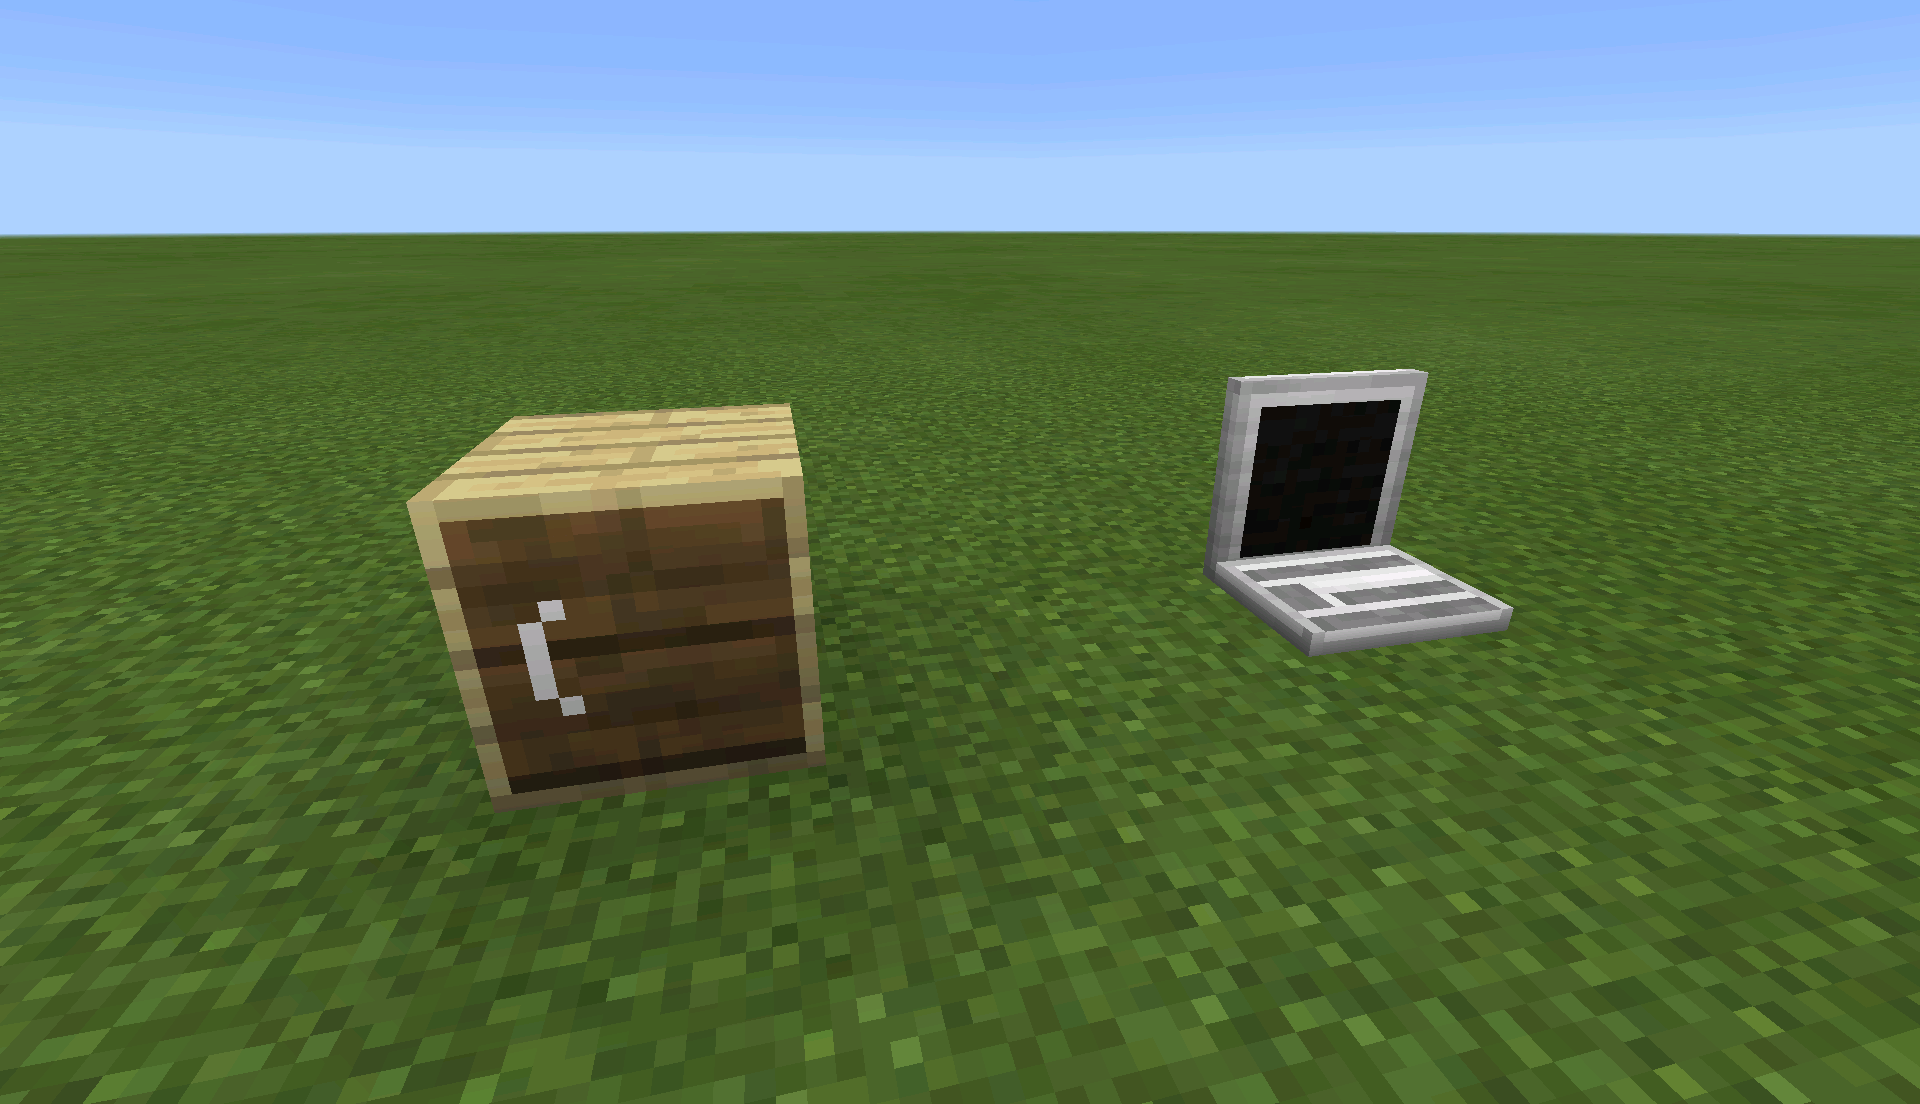 The Furniture Mod Is An Awesome Minecraft Pe Mod That Adds A Ton Of